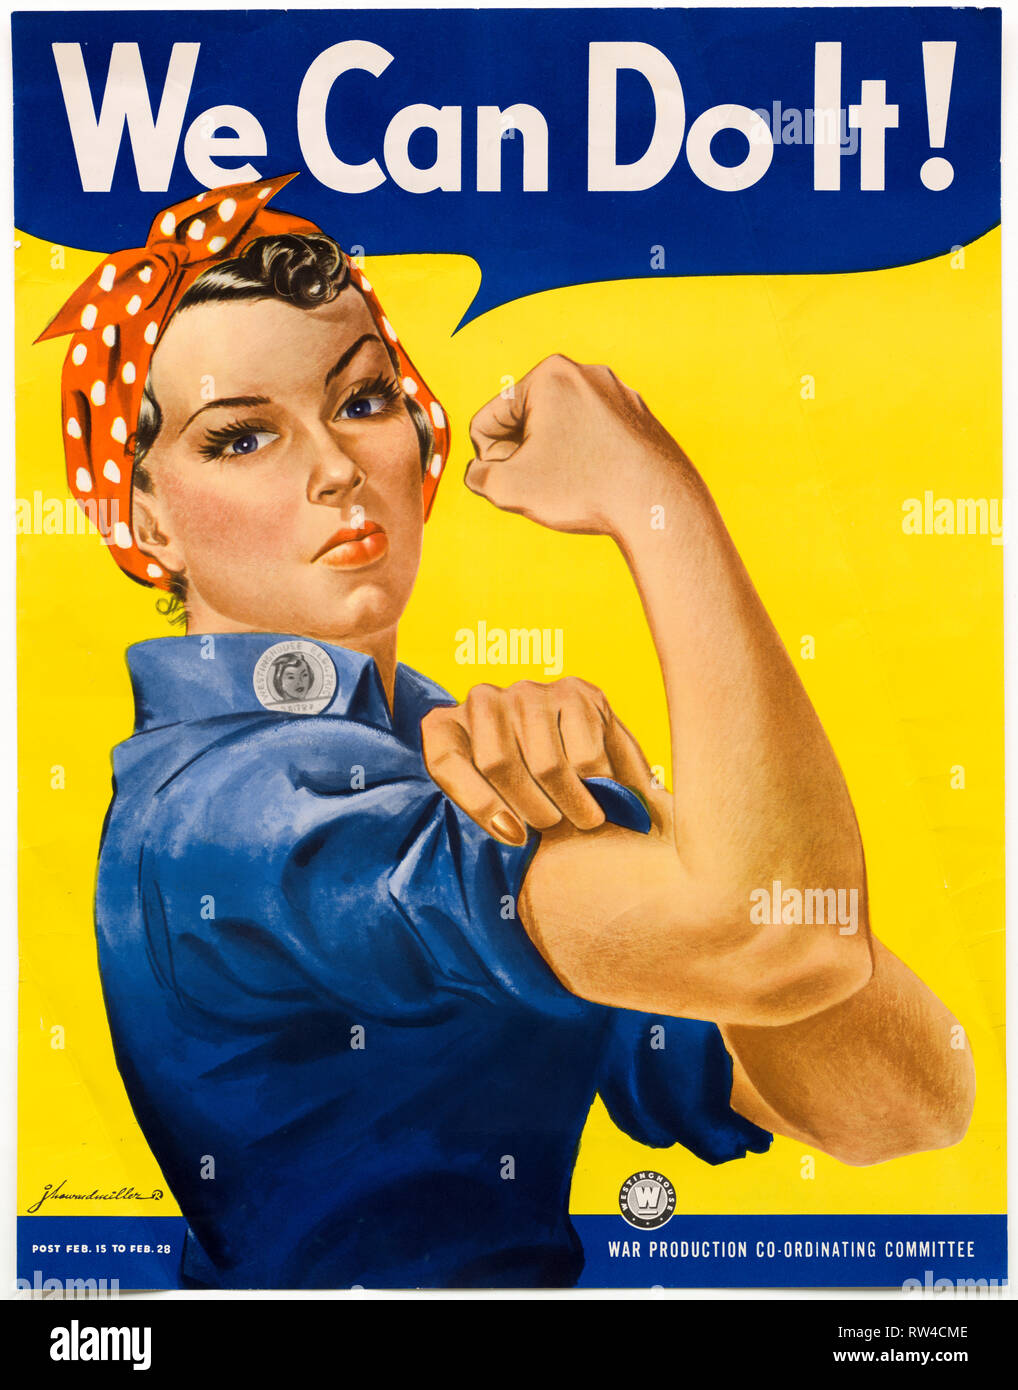 We Can Do It poster, US World War 2, c. 1942- 1943 Stock Photo